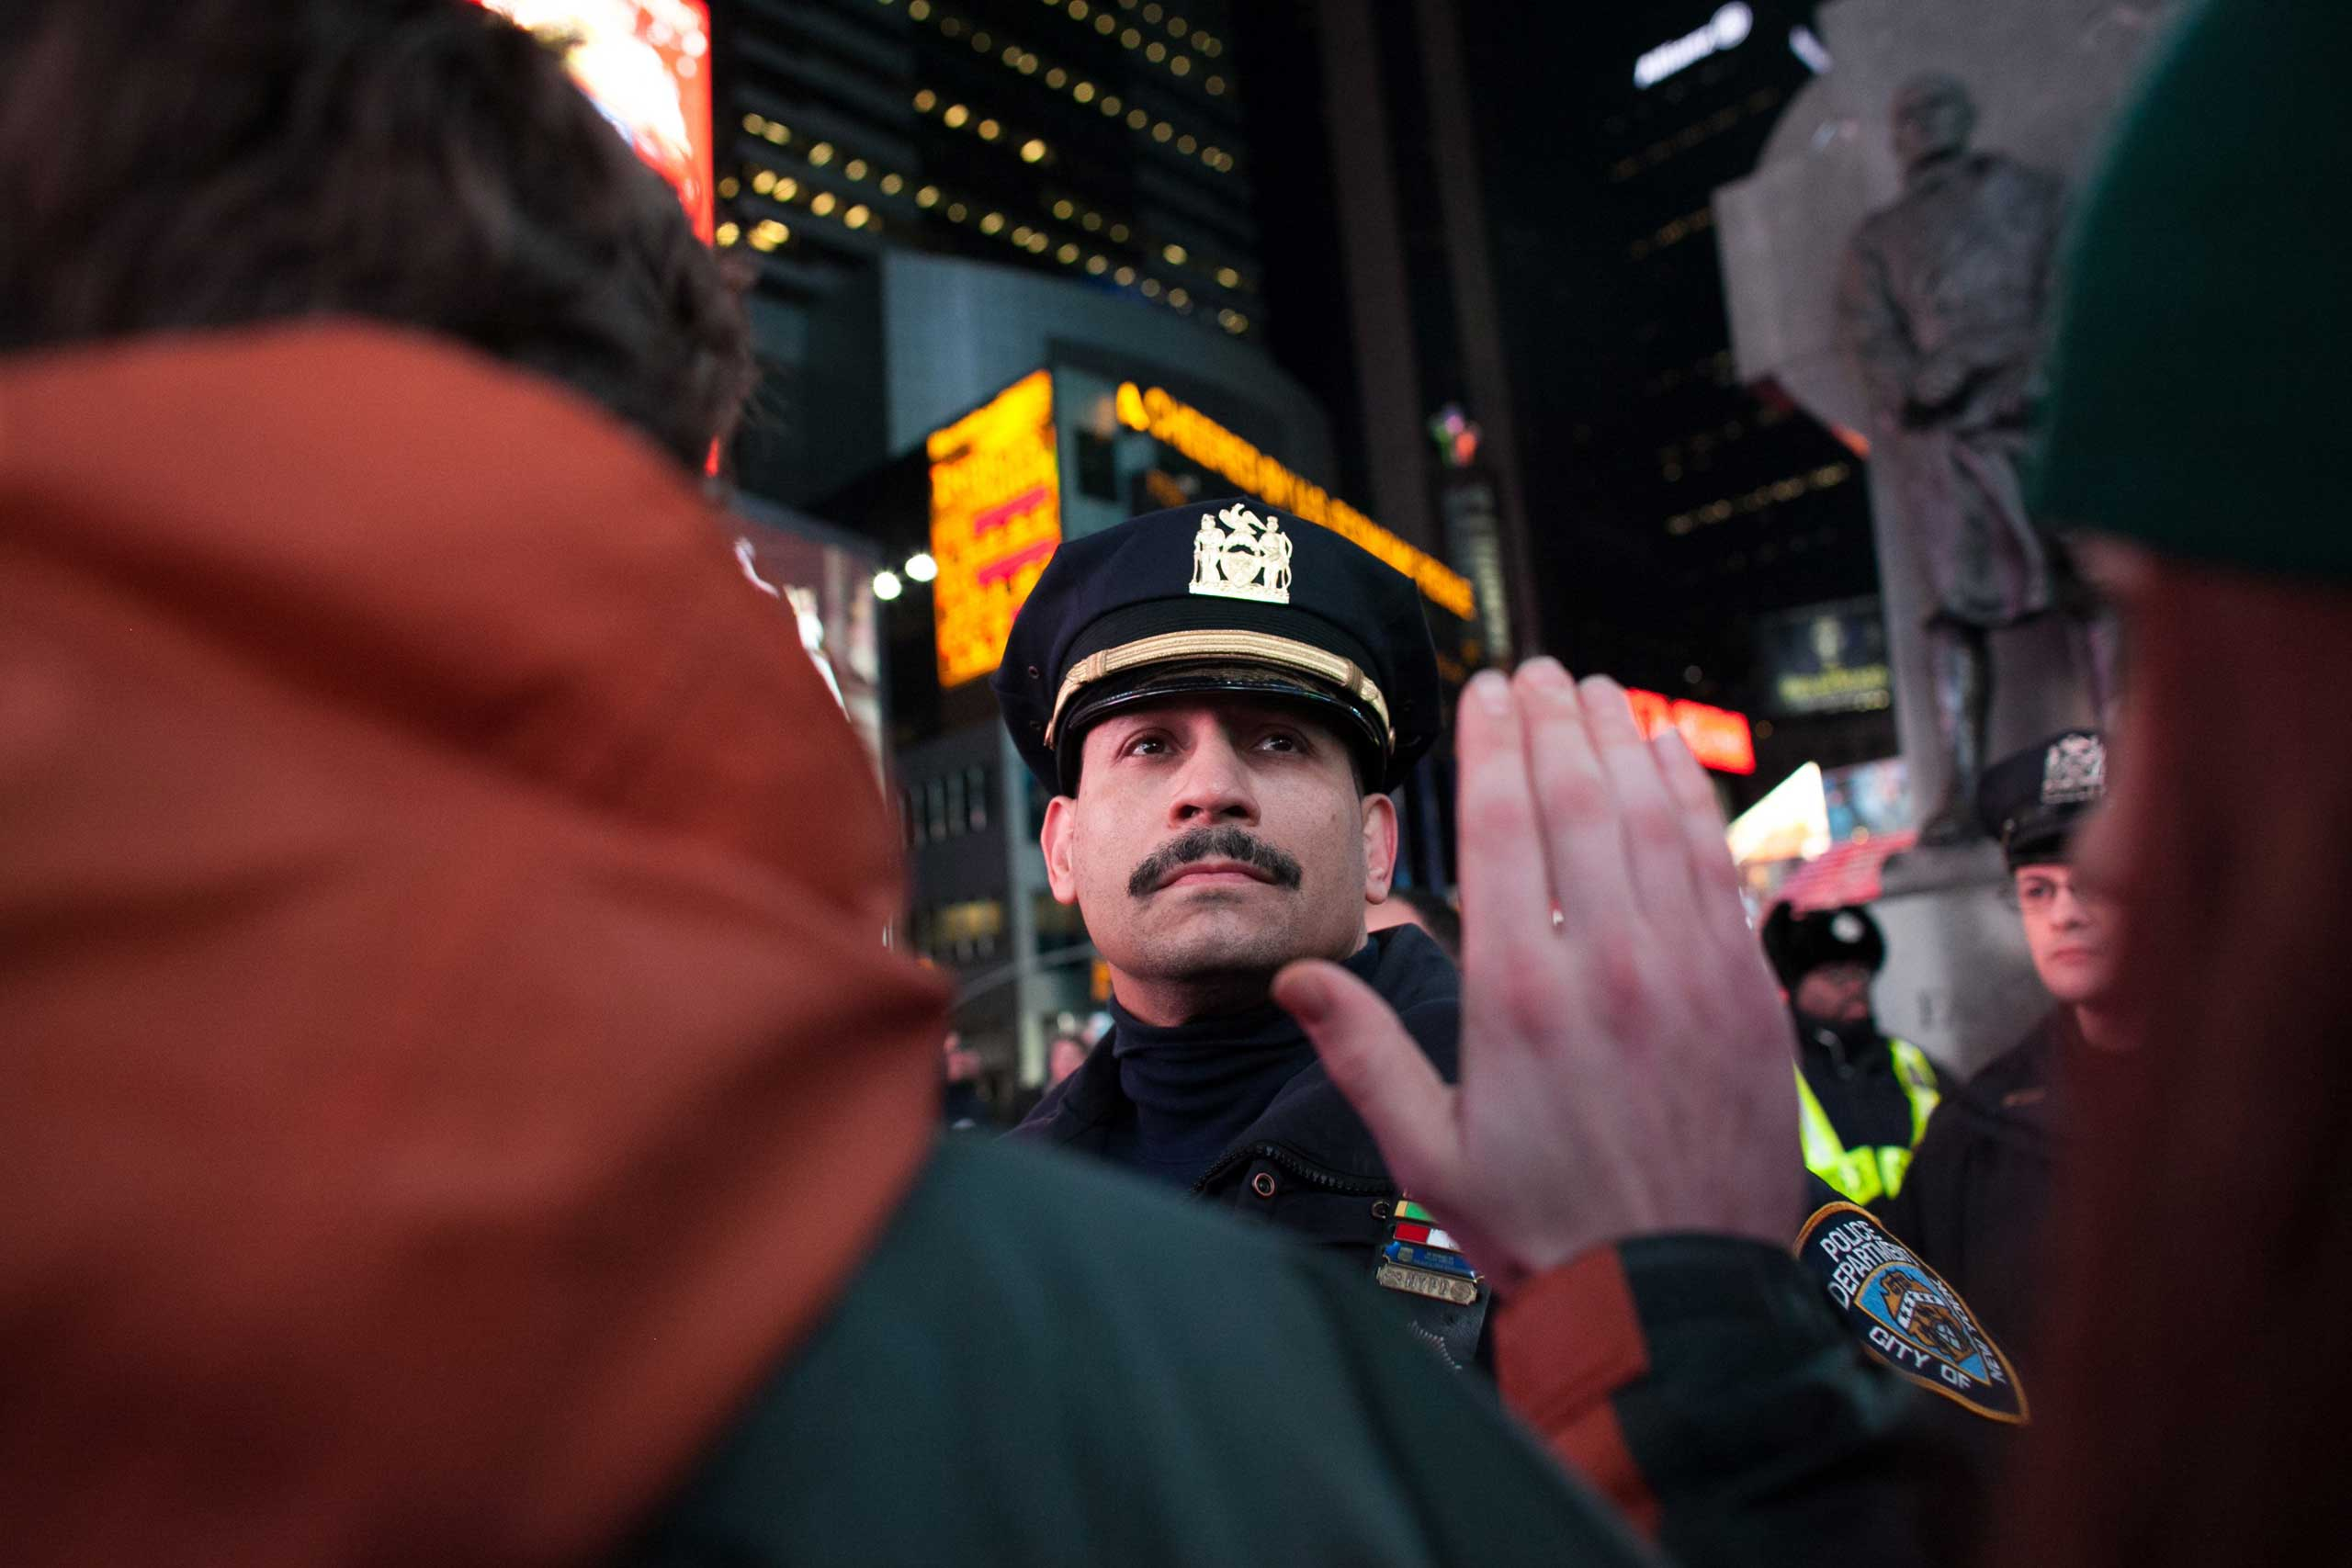 Protesters raise their arms and chant at police officers in Times Square in New York City on Dec. 3, 2014.